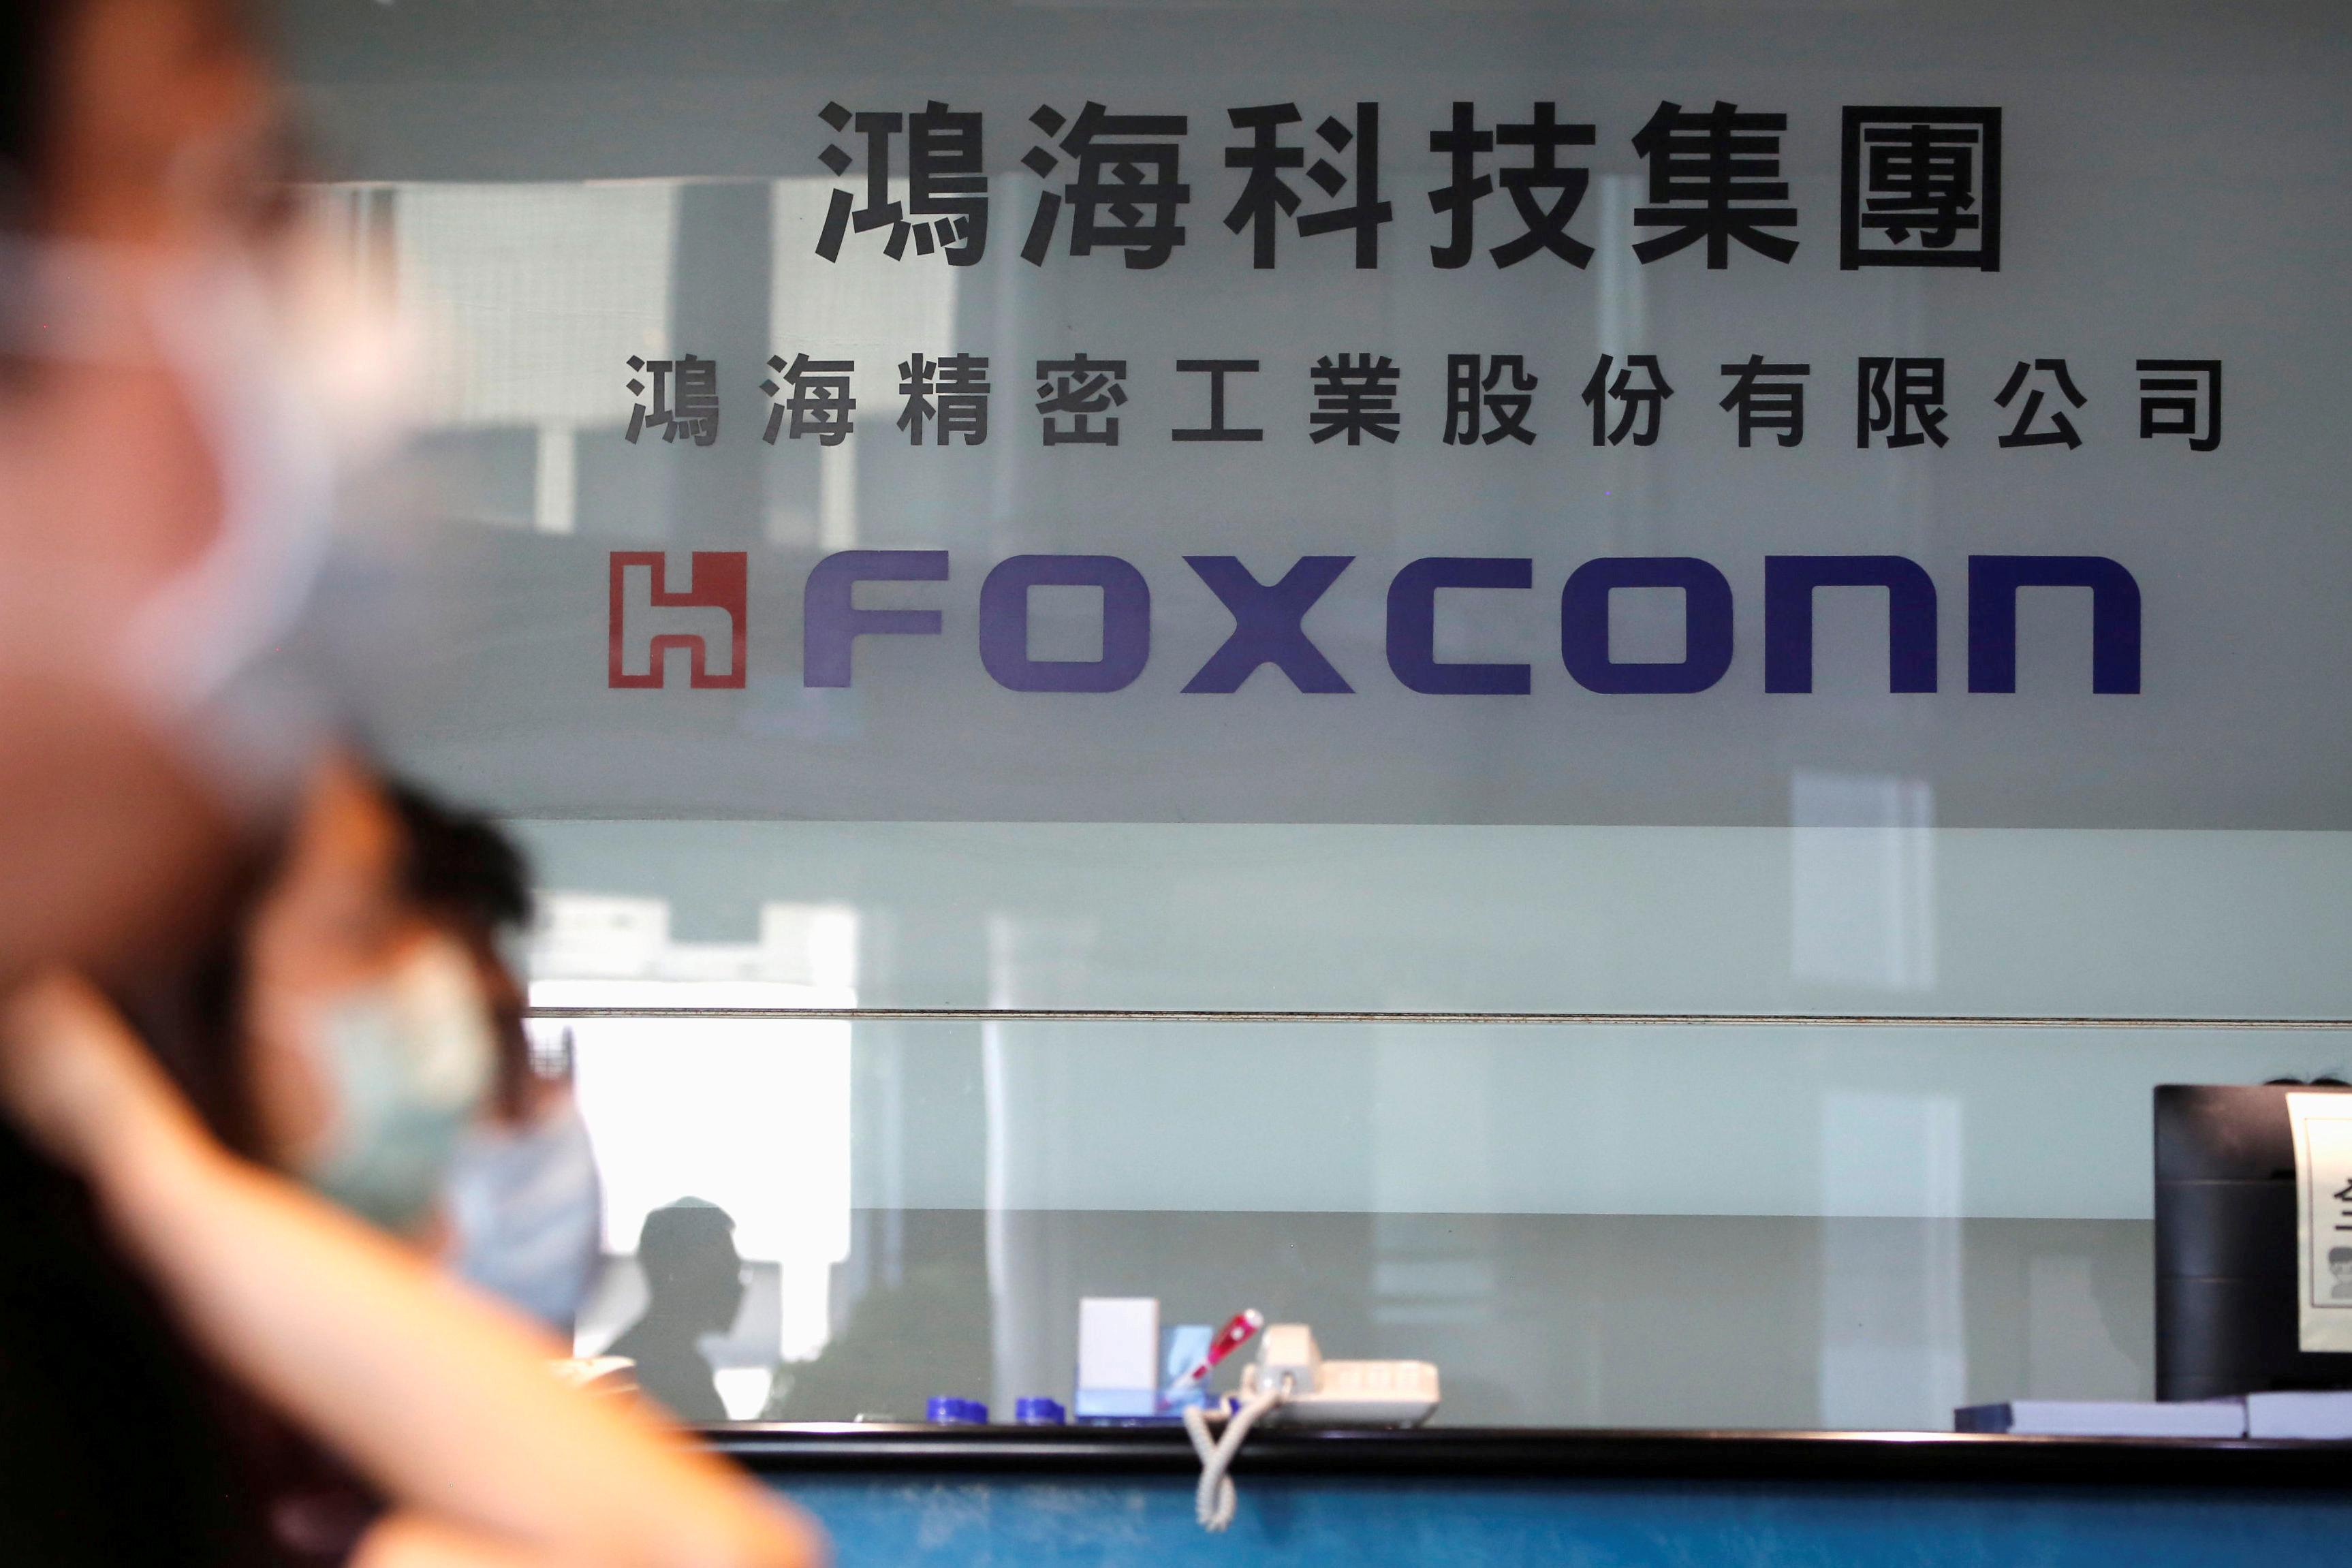 People wear masks to protect themselves from coronavirus disease (COVID-19), while listening to the annual general meeting at the lobby of Foxconn